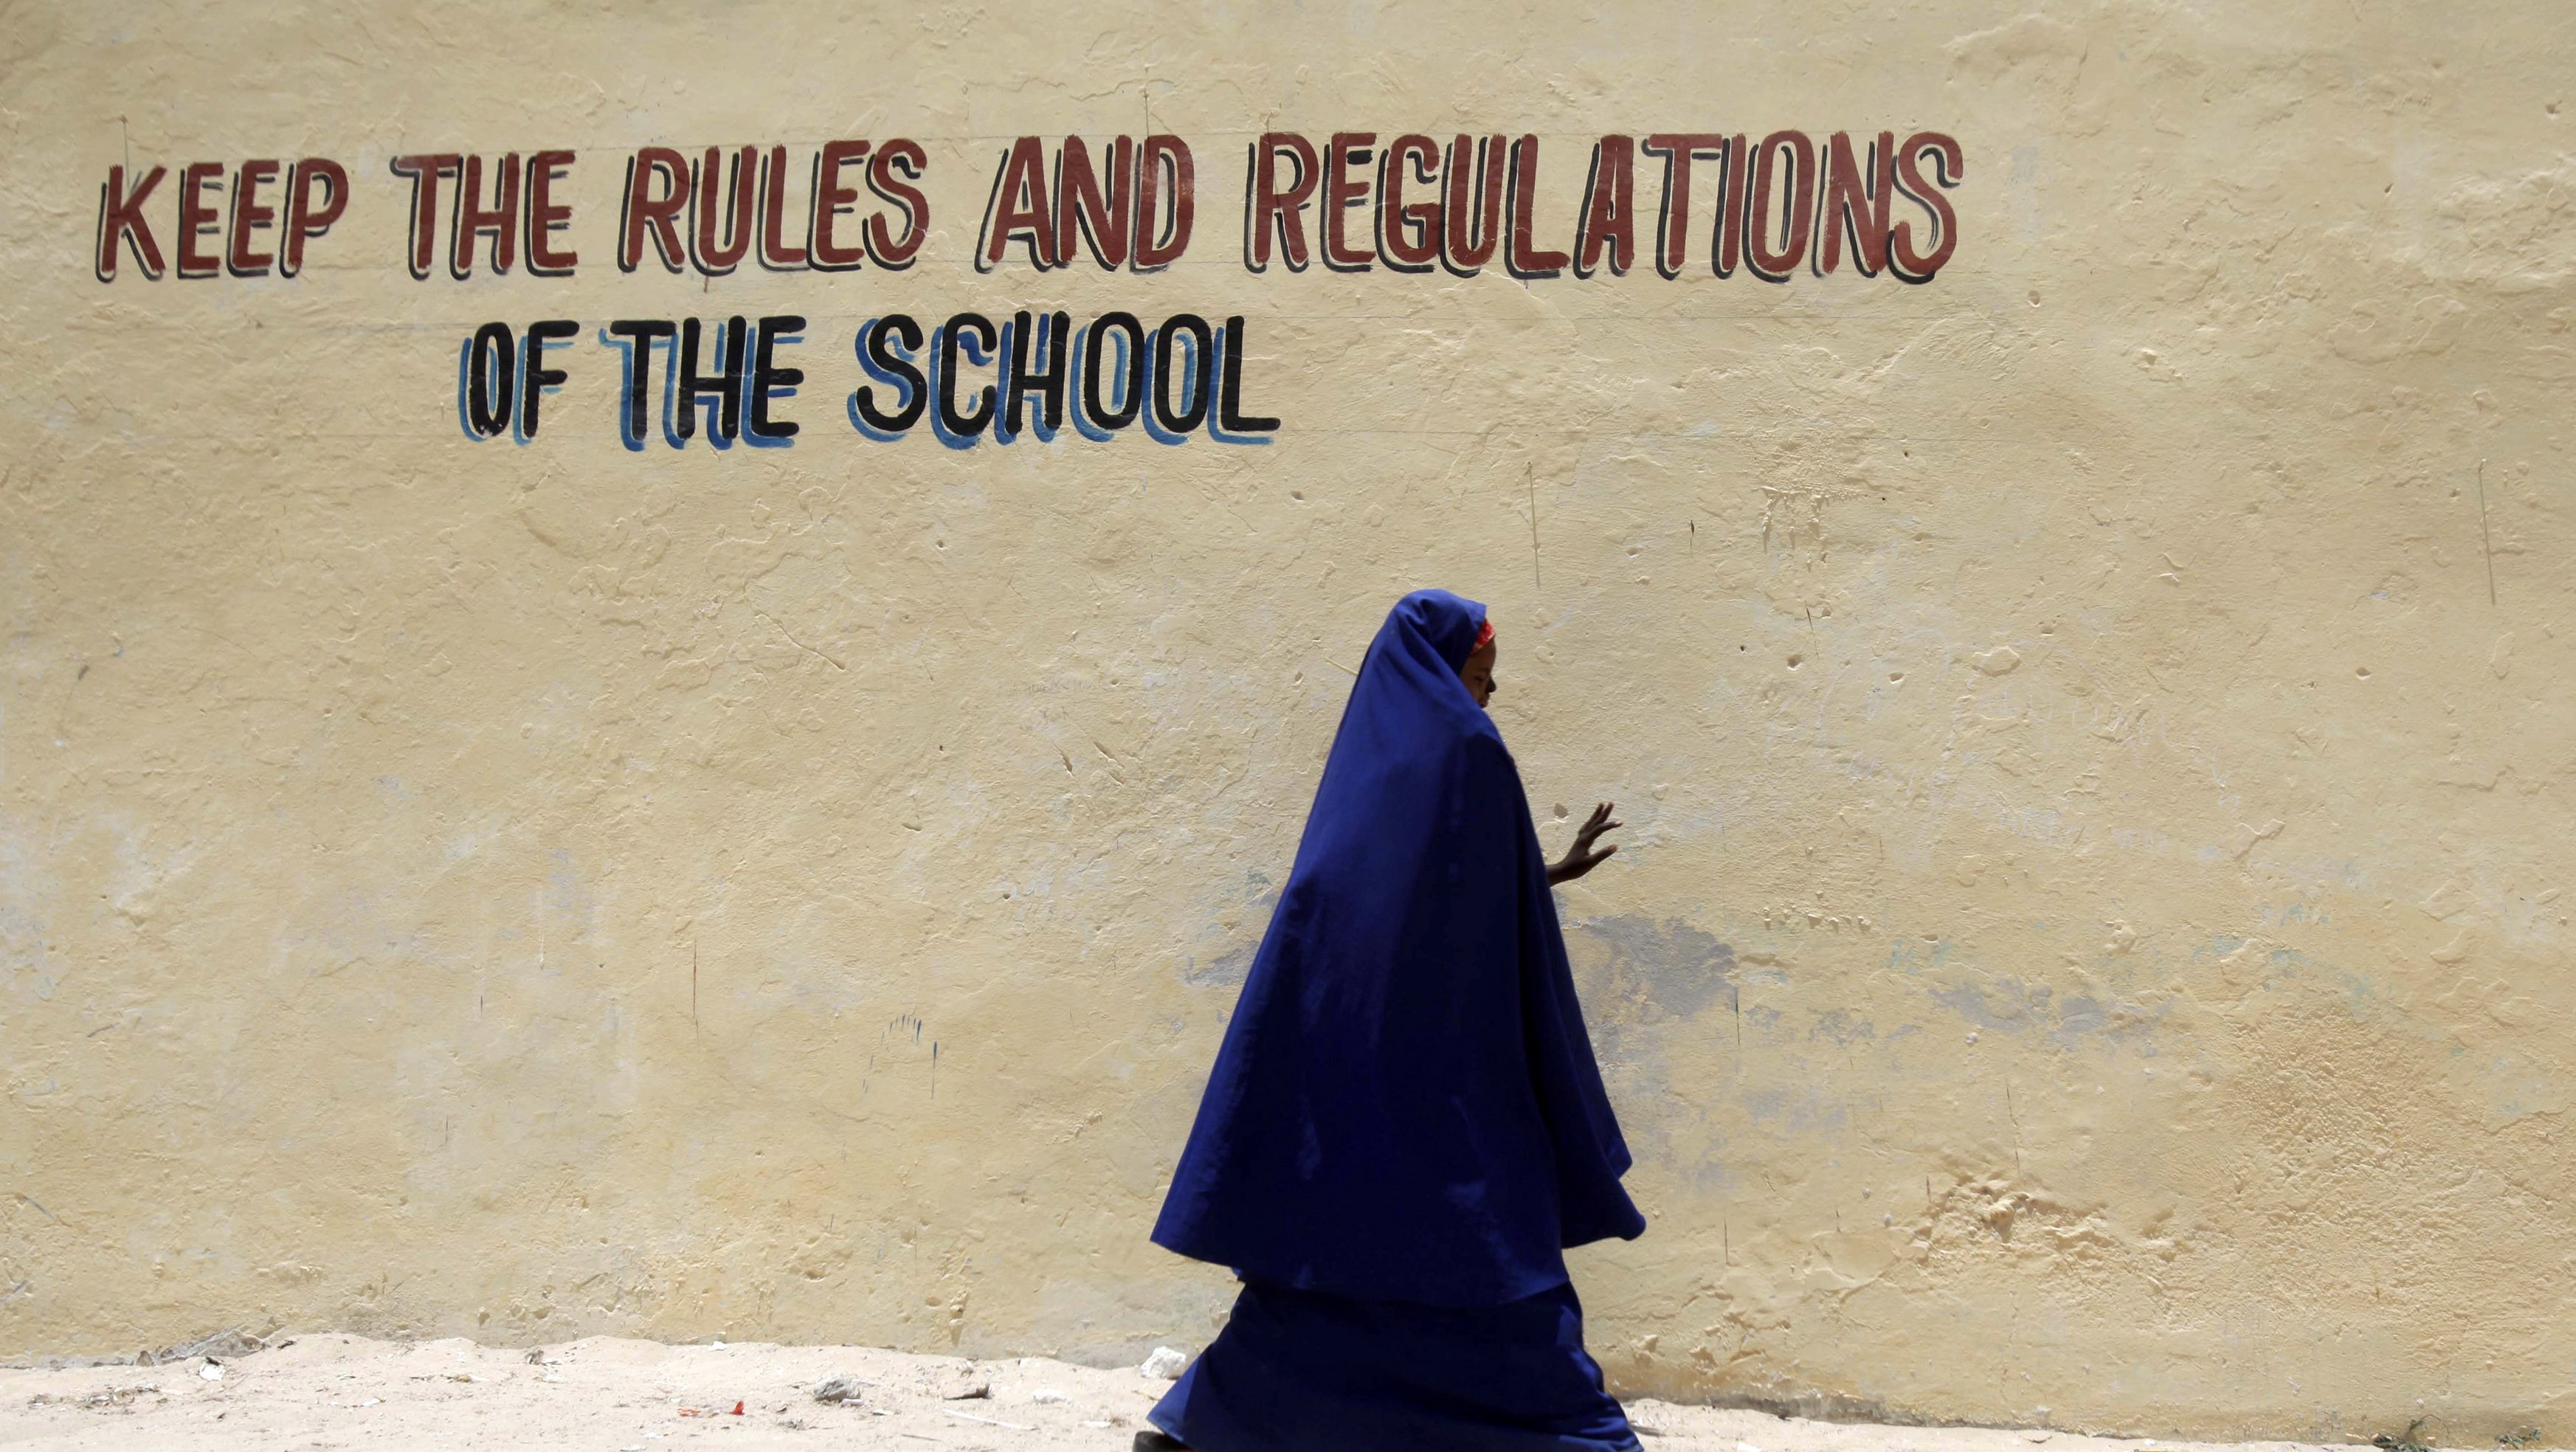 Somalia to block social media during high school exams